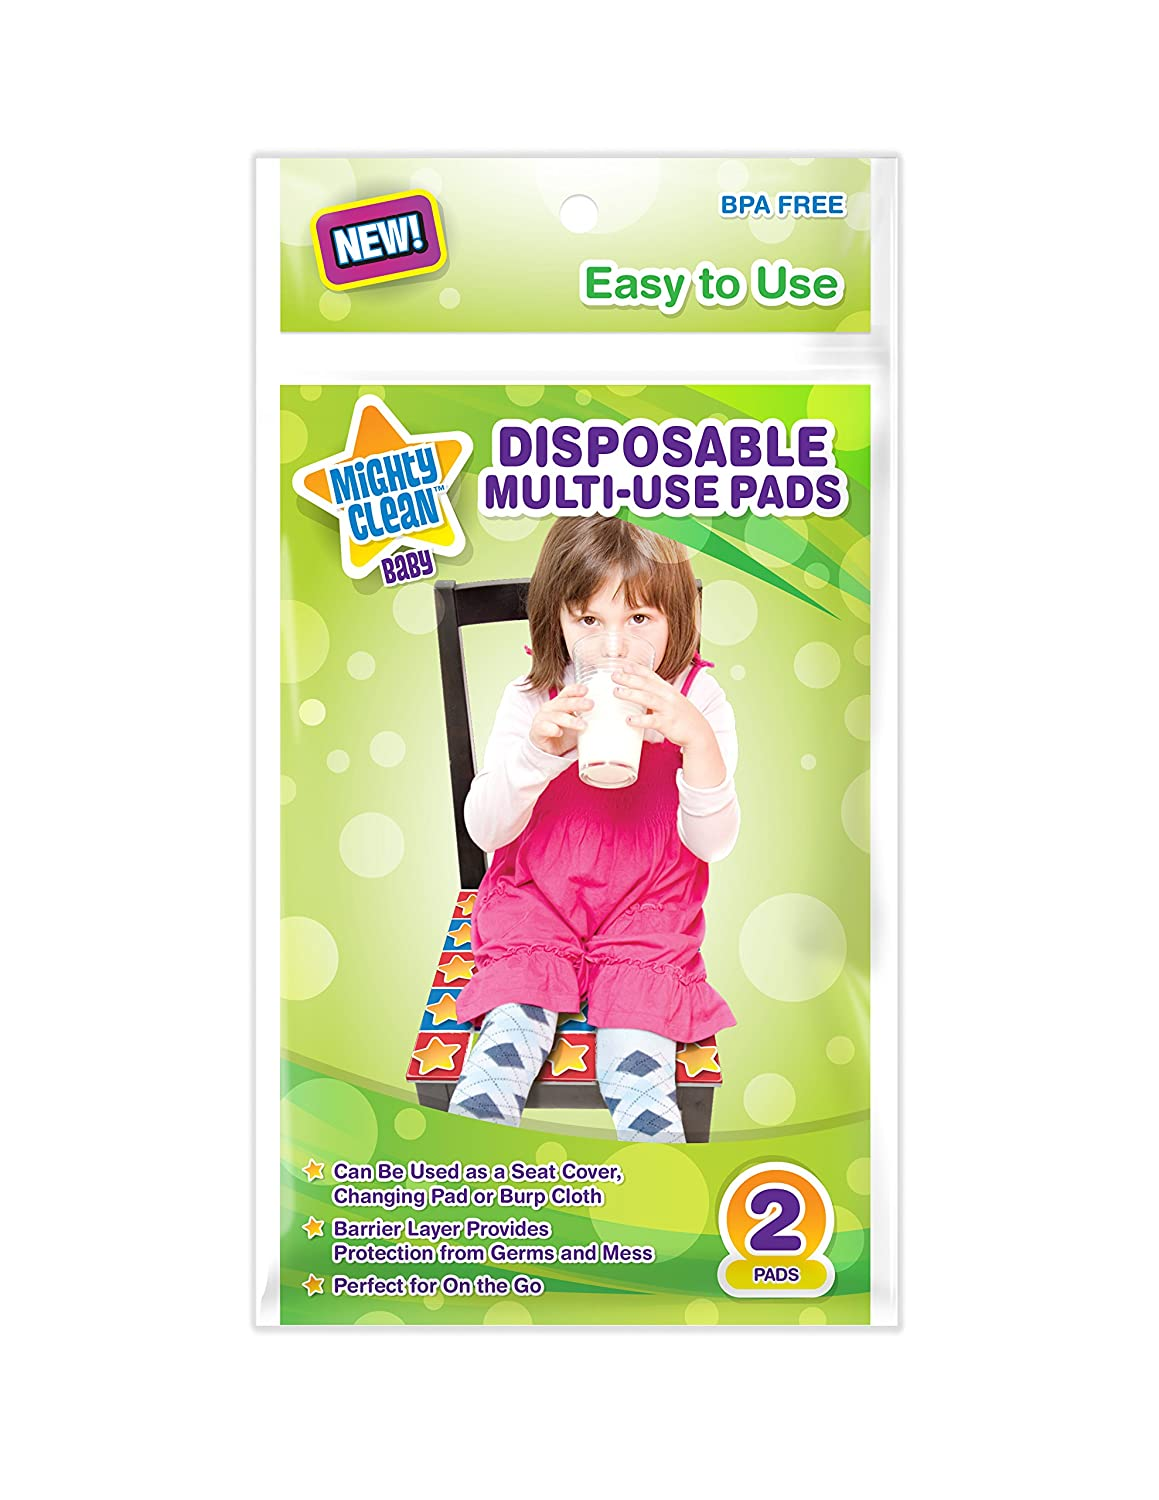 Mighty Clean Baby Disposable Multi-Use Pad 9 Packs of 2 Pads 18 Count